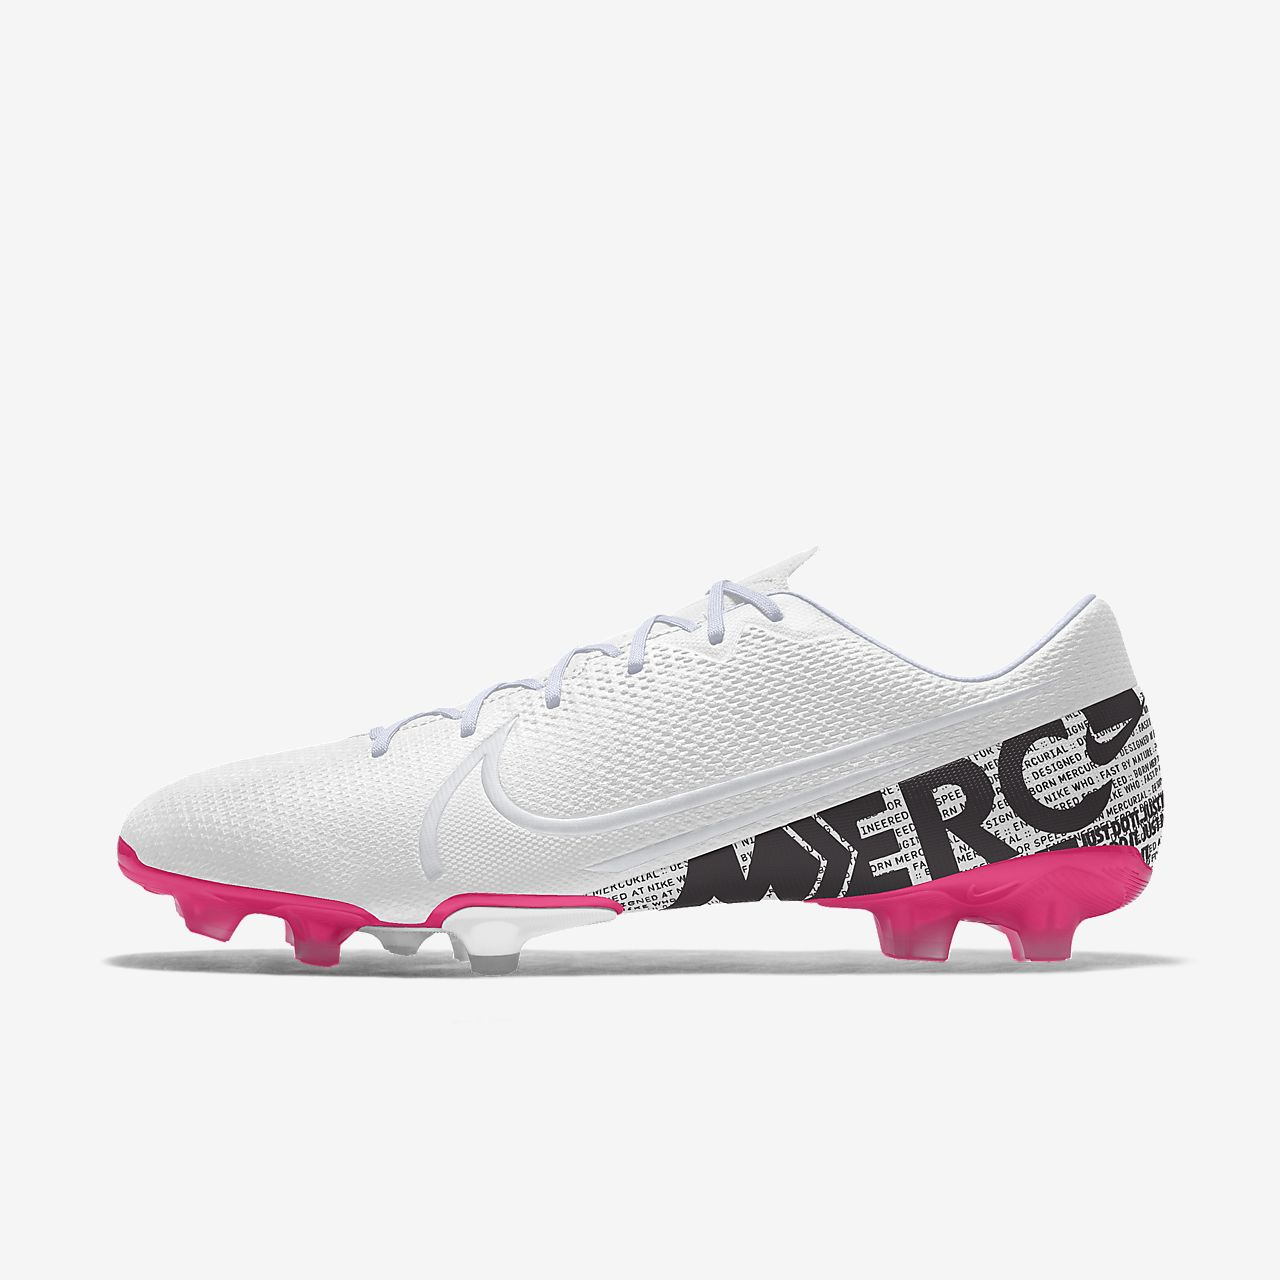 Nike Mercurial Vapor 13 Academy FG By You Custom Firm-Ground Soccer Cleat